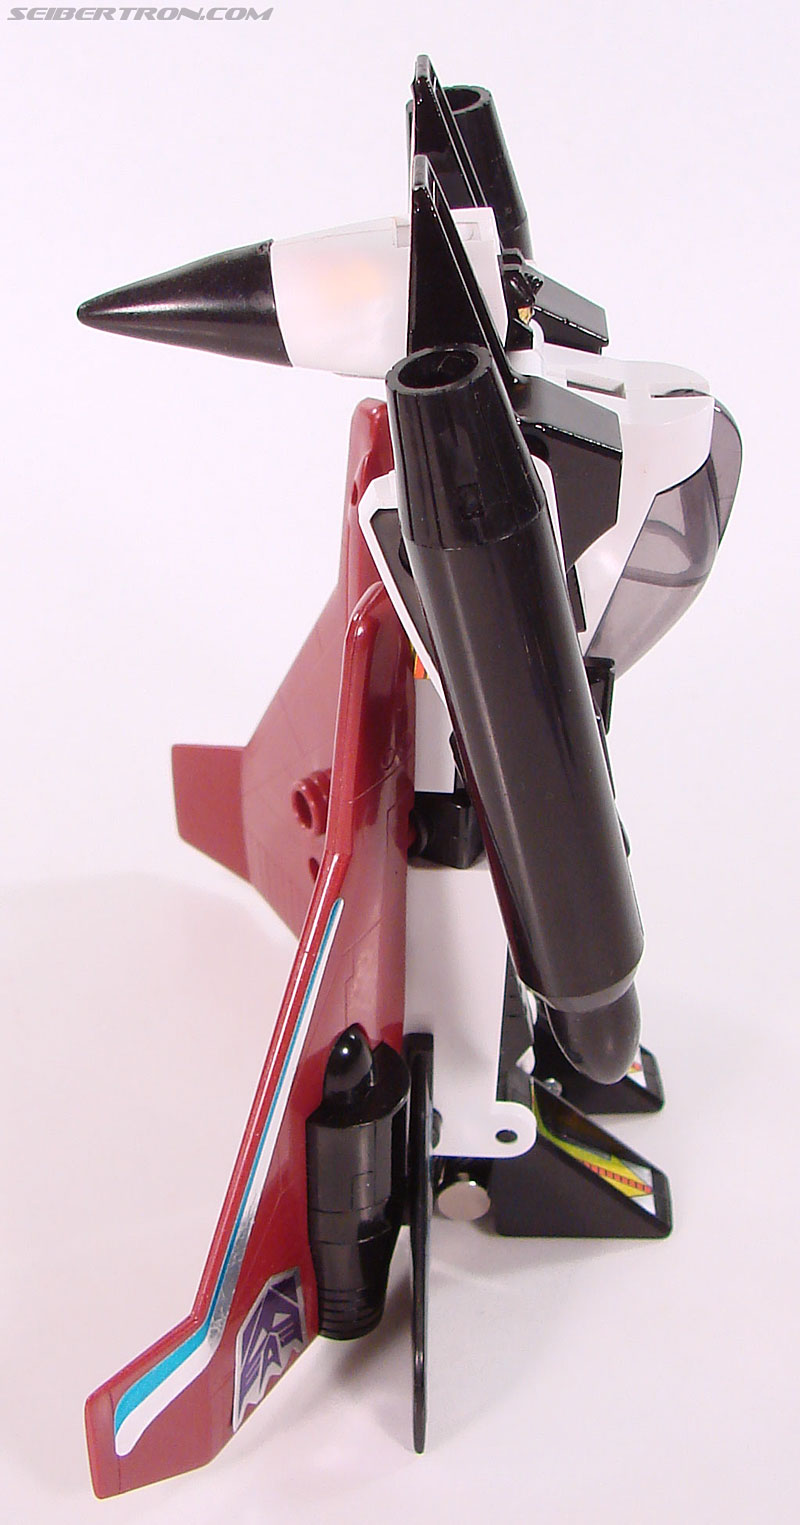 Transformers G1 1985 Ramjet (Image #137 of 168)